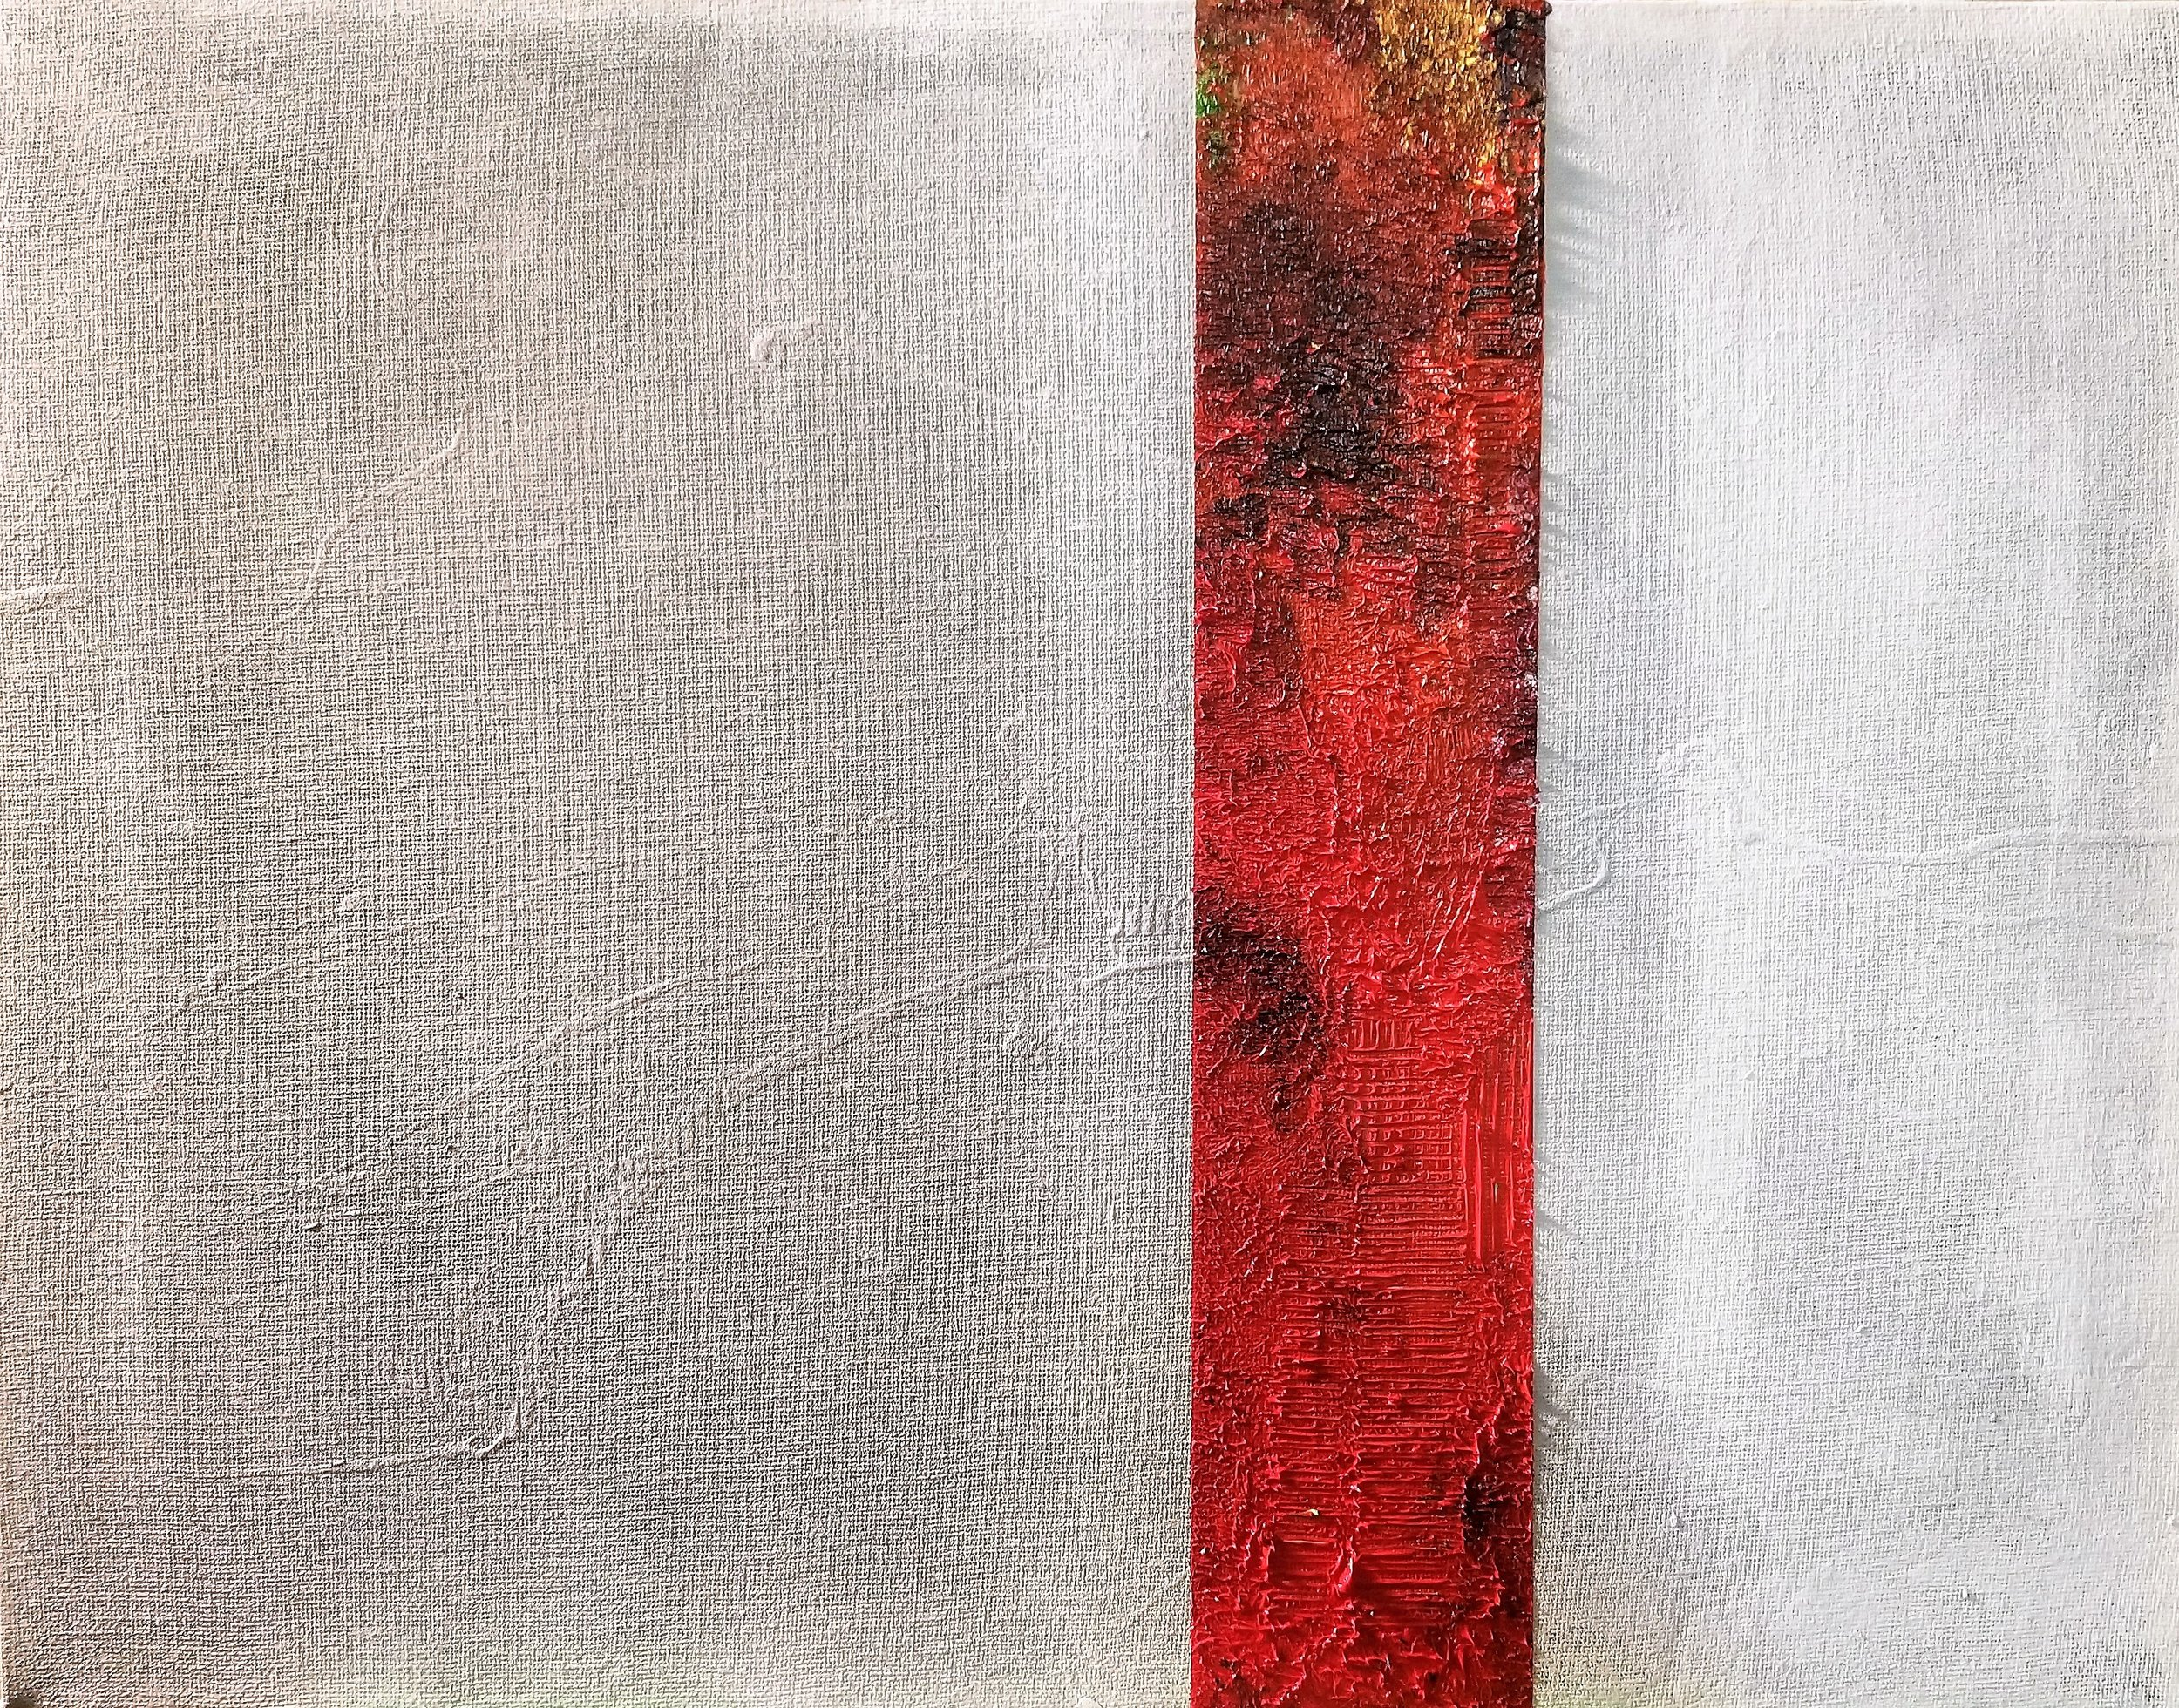 Red Strip on White Untitled 5, 2018